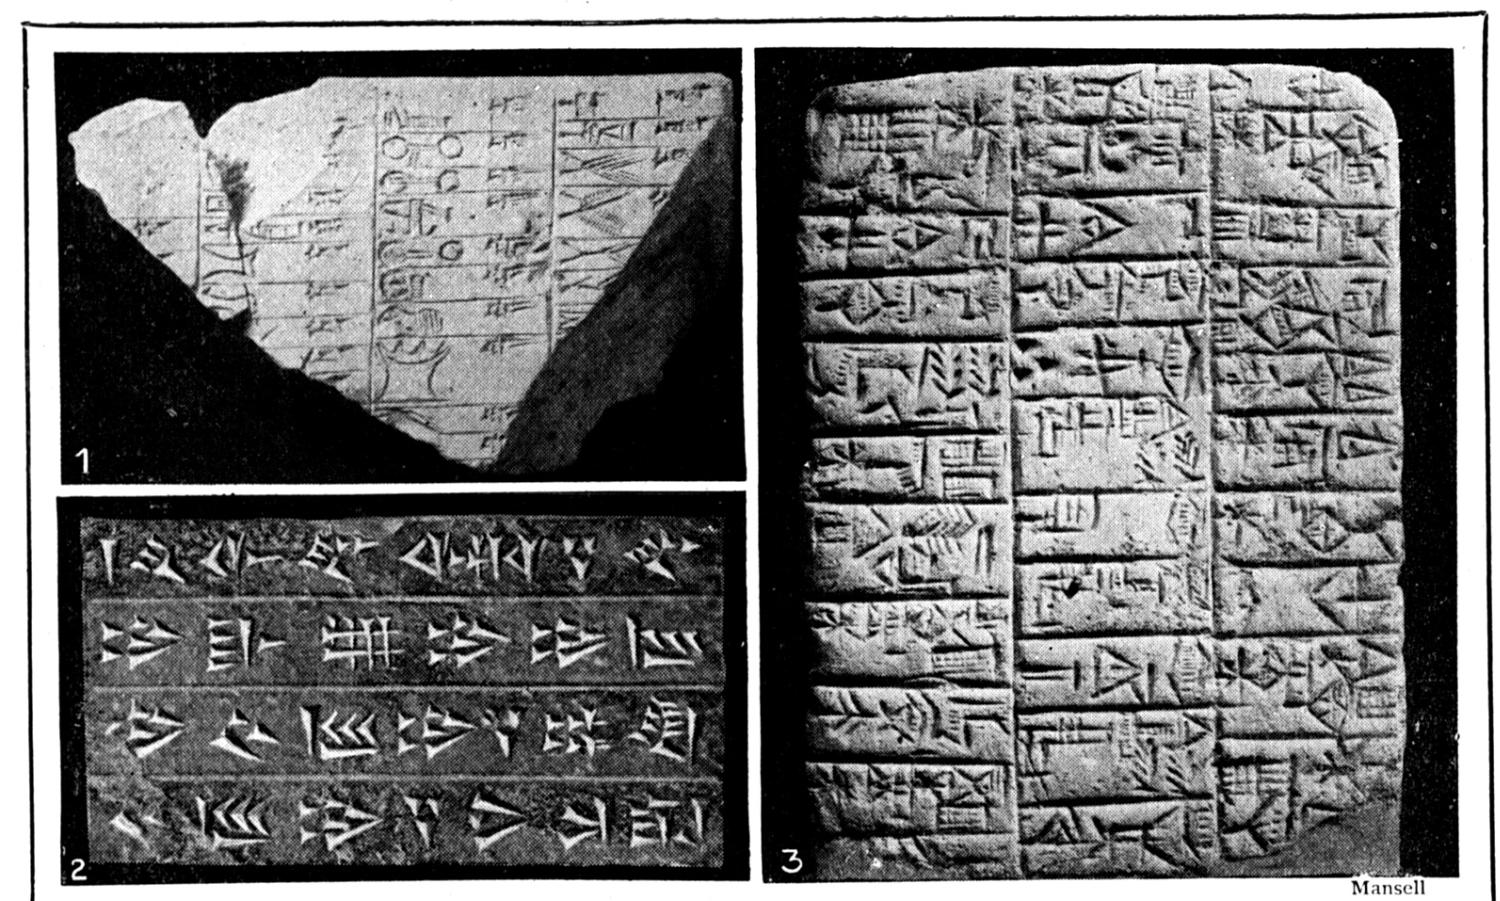 History of Sumerian Writing and Cuneiform